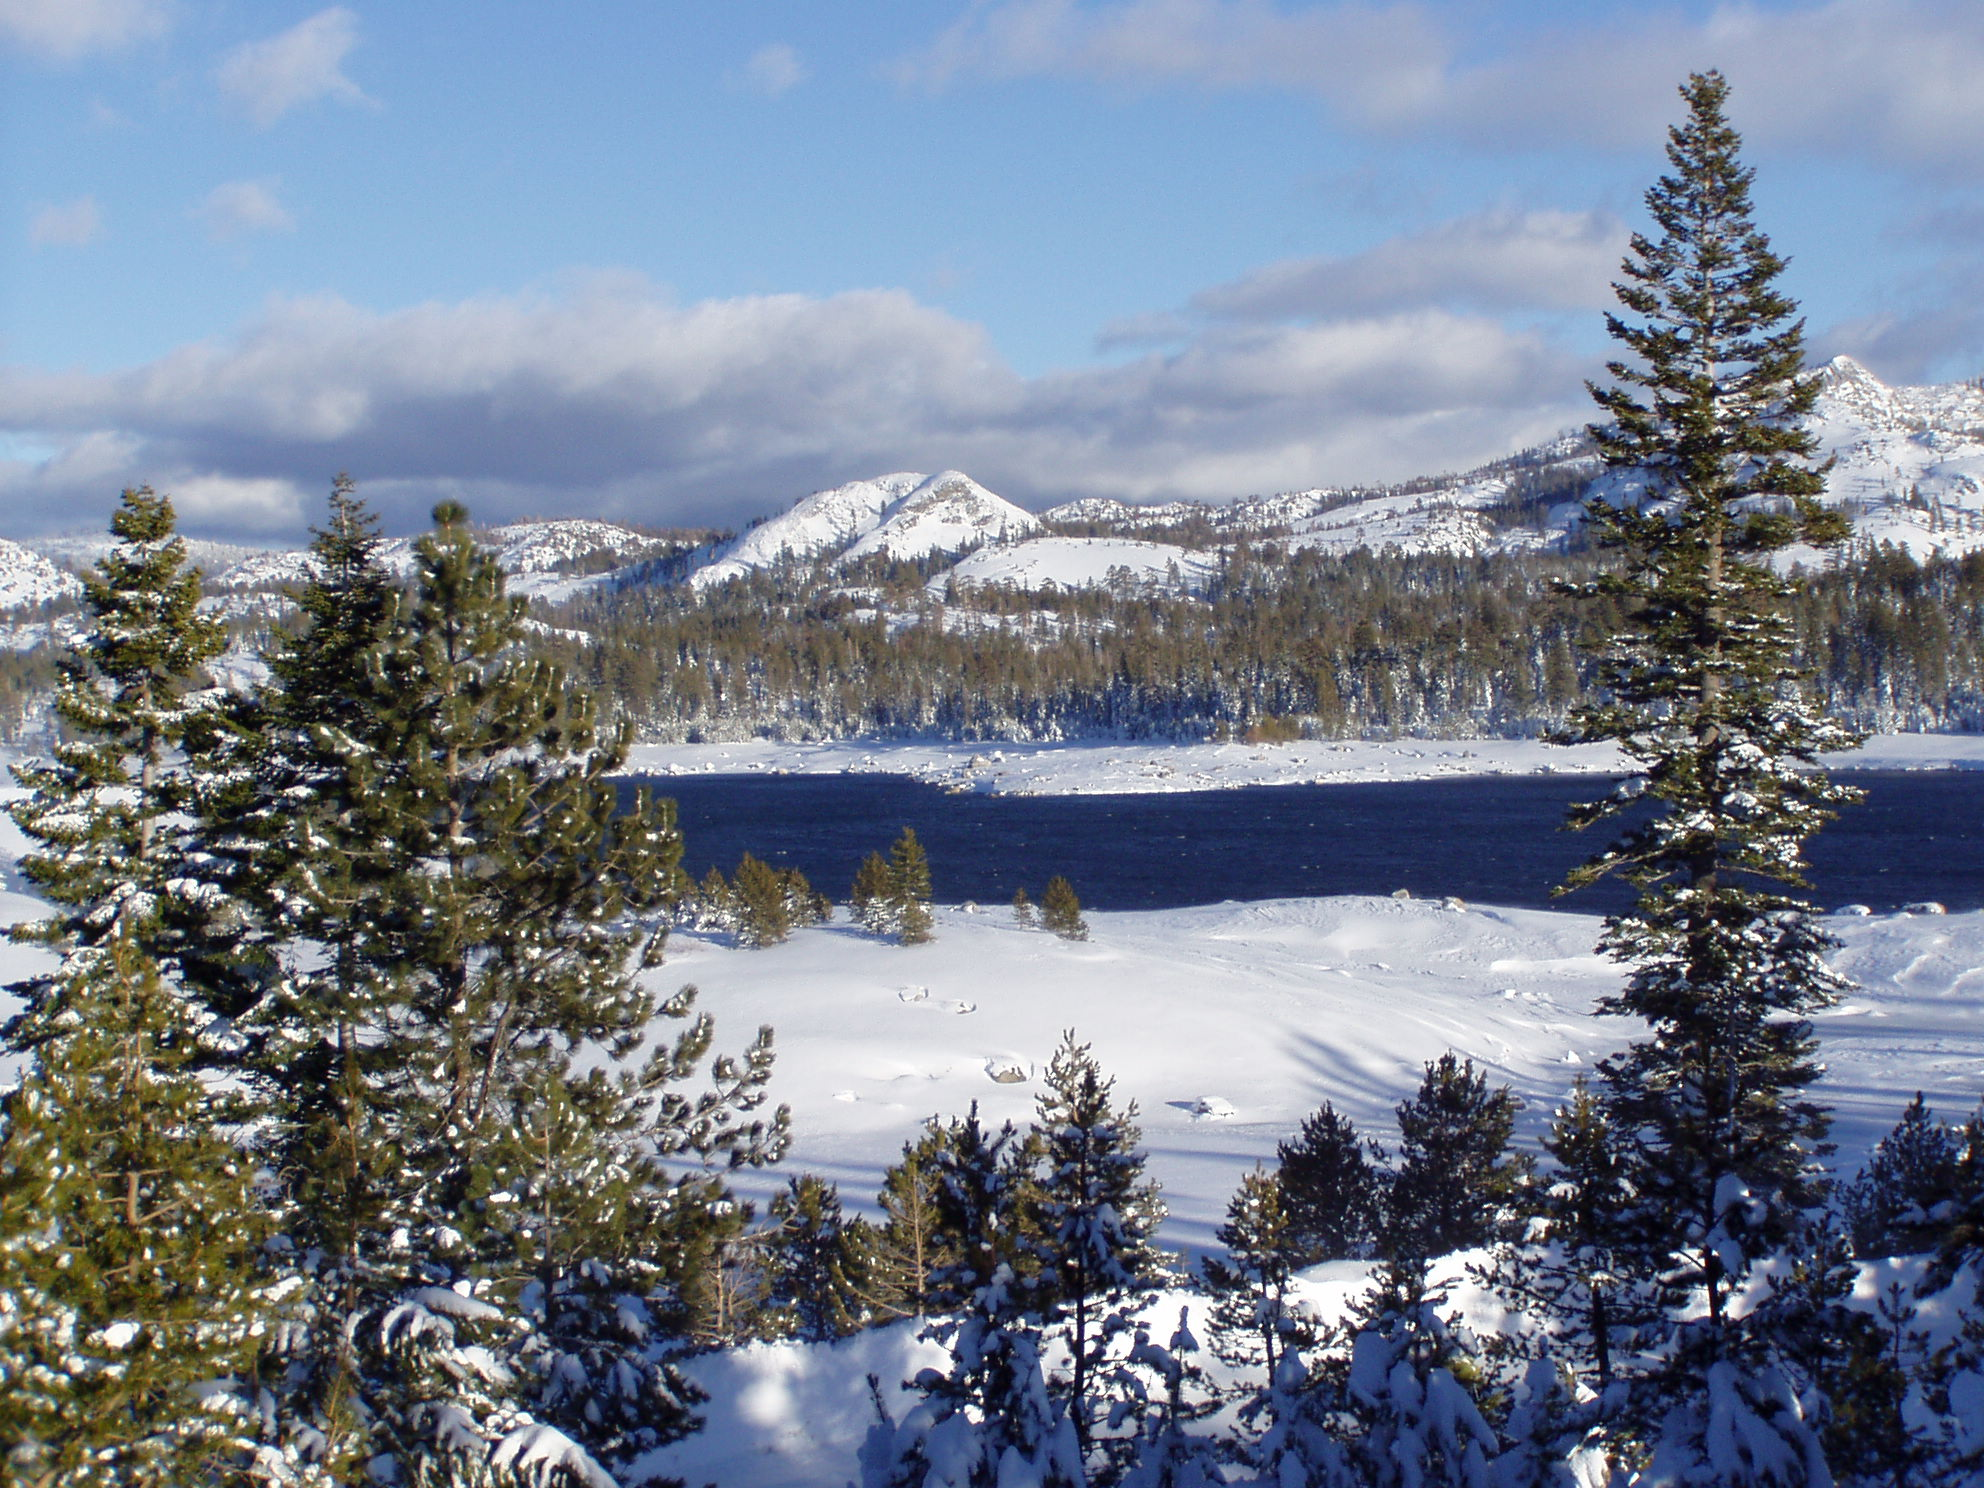 Scenic photo of Loon Lake in the winter.